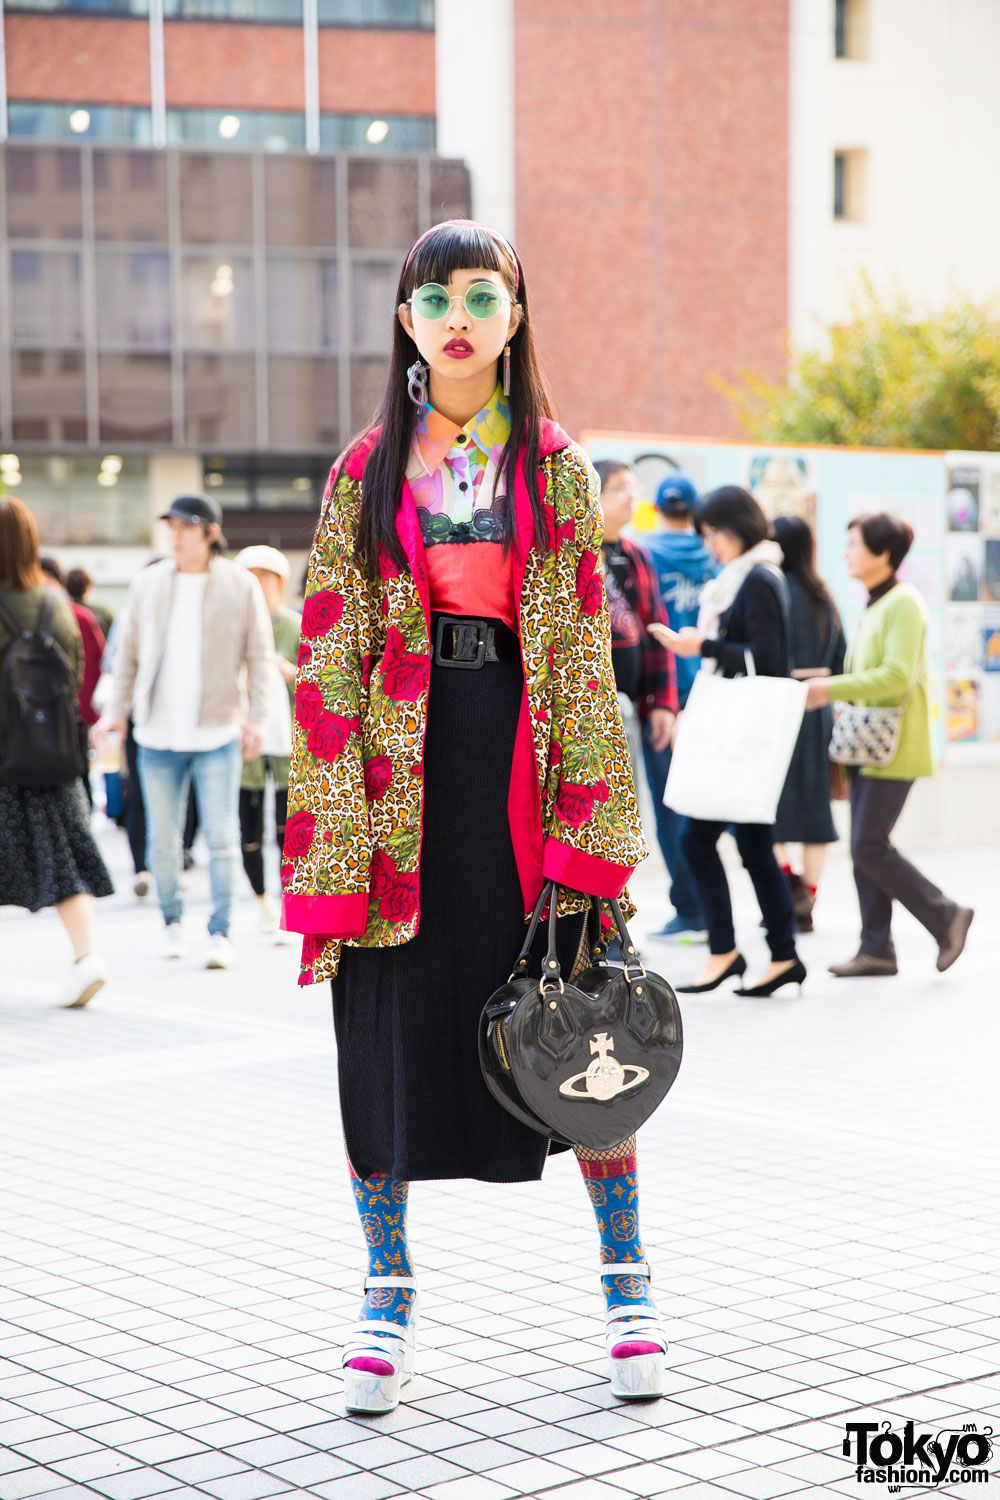 7a9ee87ec3f Japanese Fashion Student in Vintage Mixed Prints Street Style w  Bubbles  Tokyo   Vivienne Westwood